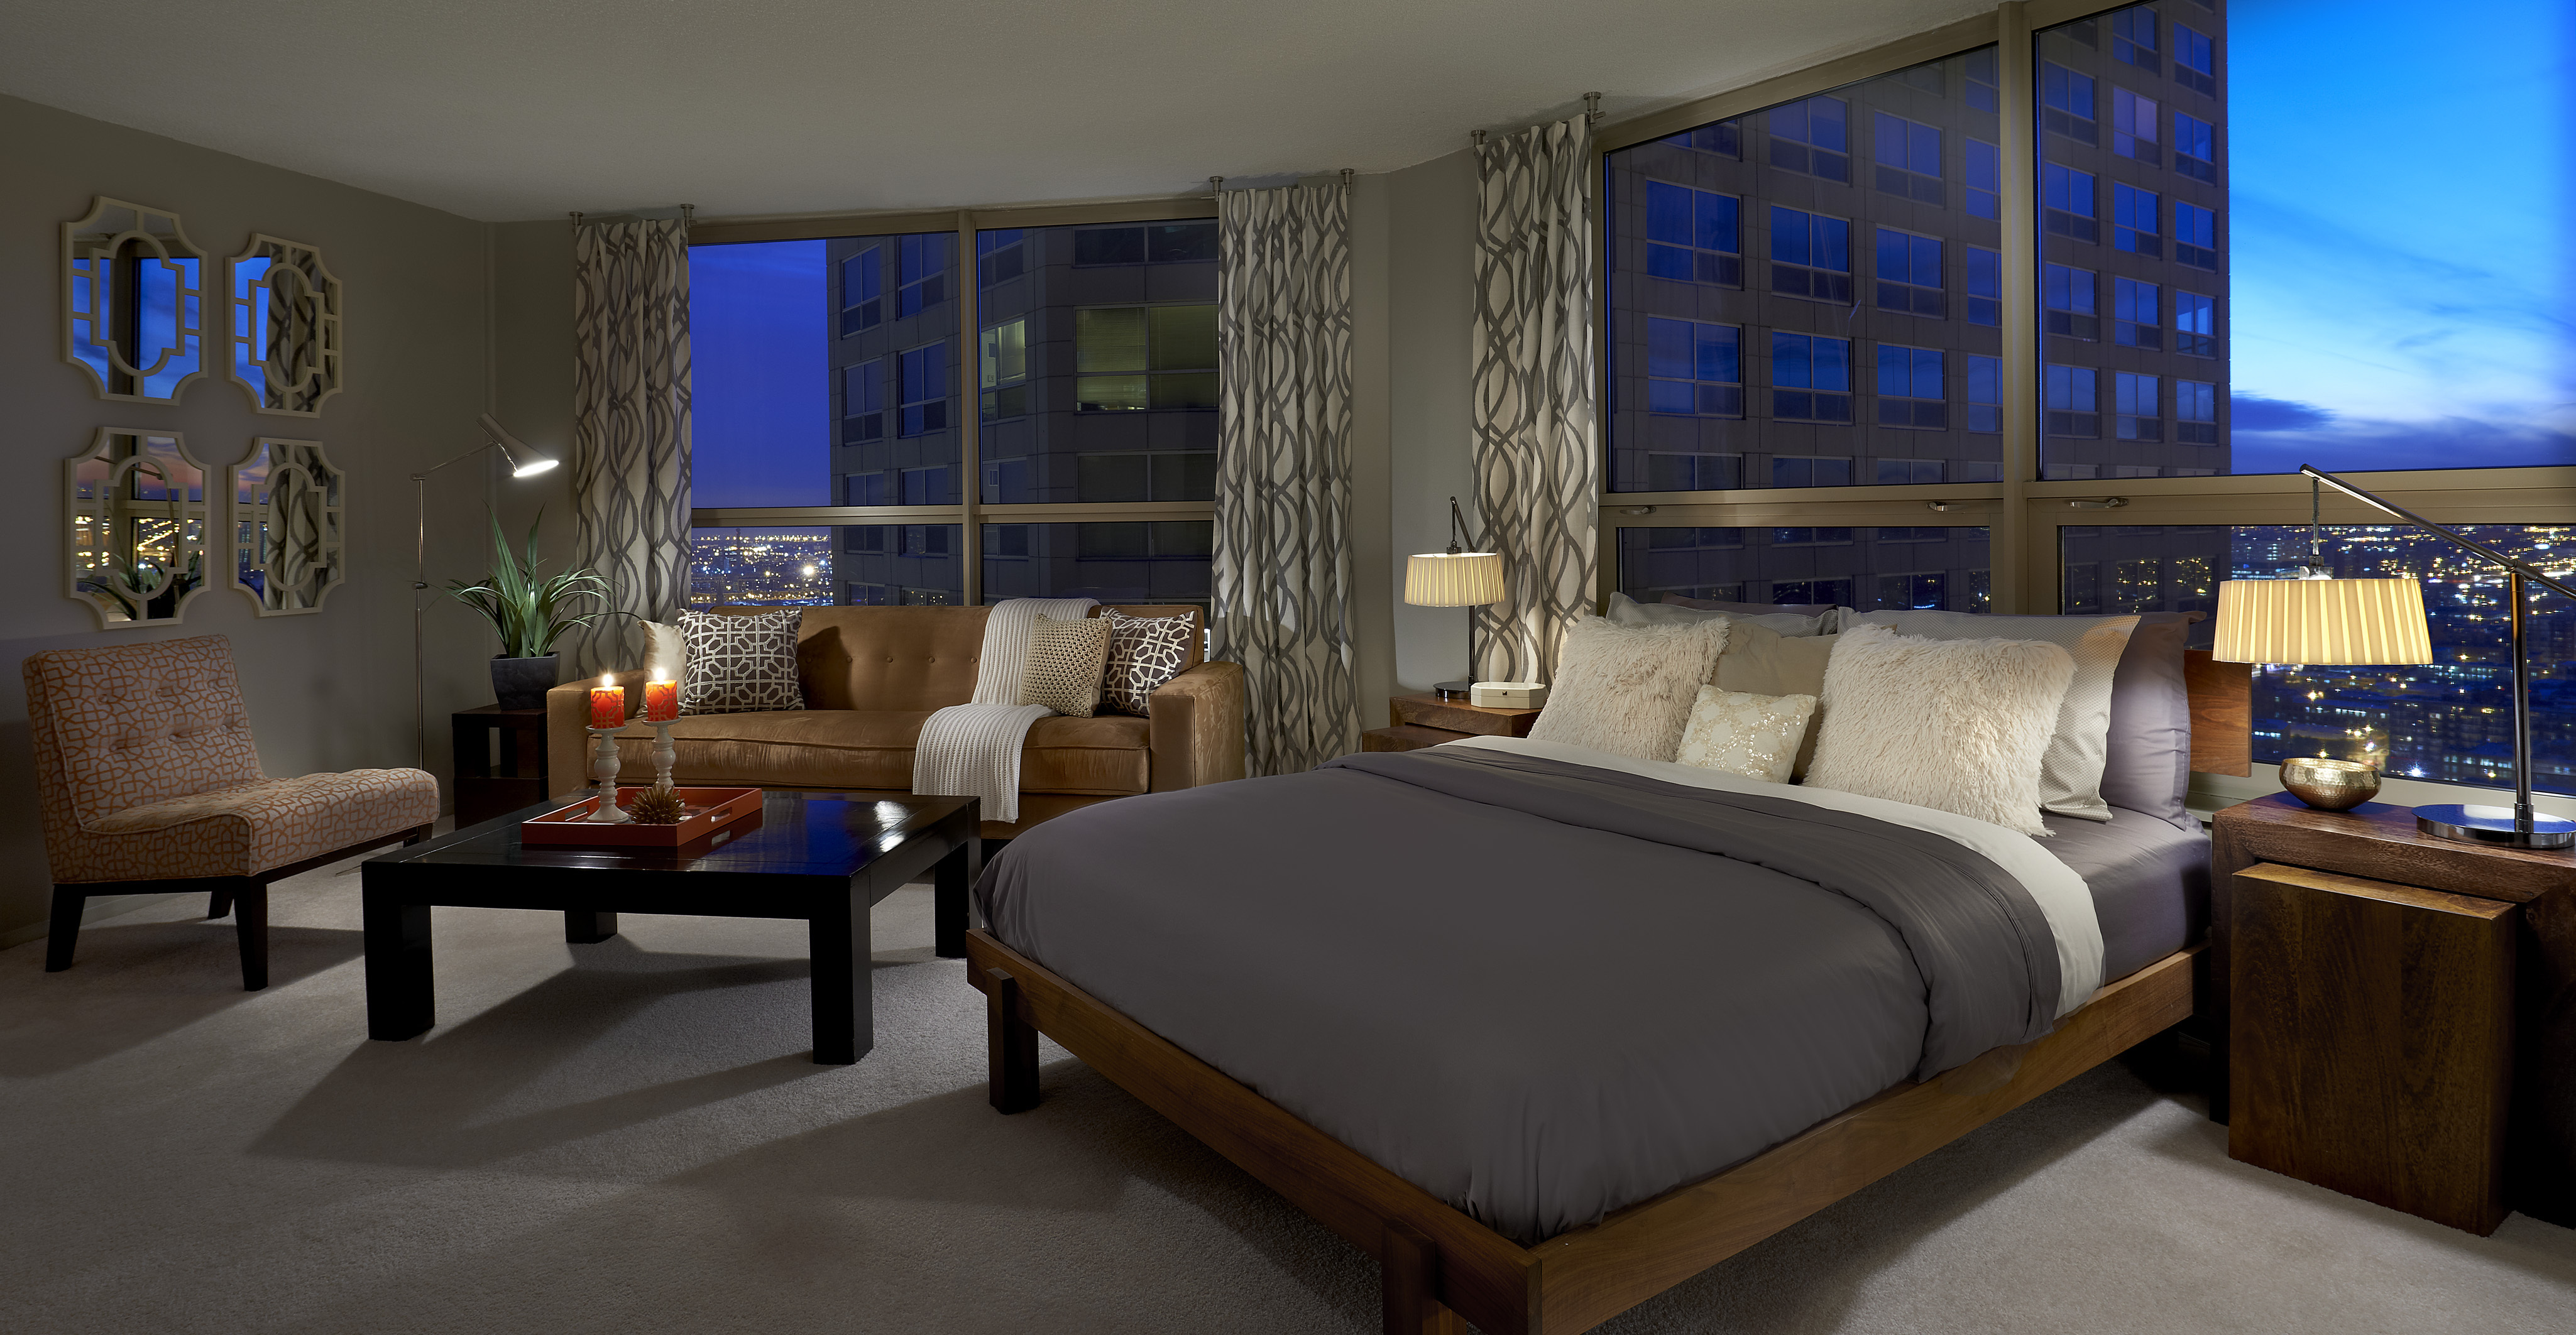 Presidential Towers Awarded Leed Silver Certification Business Wire